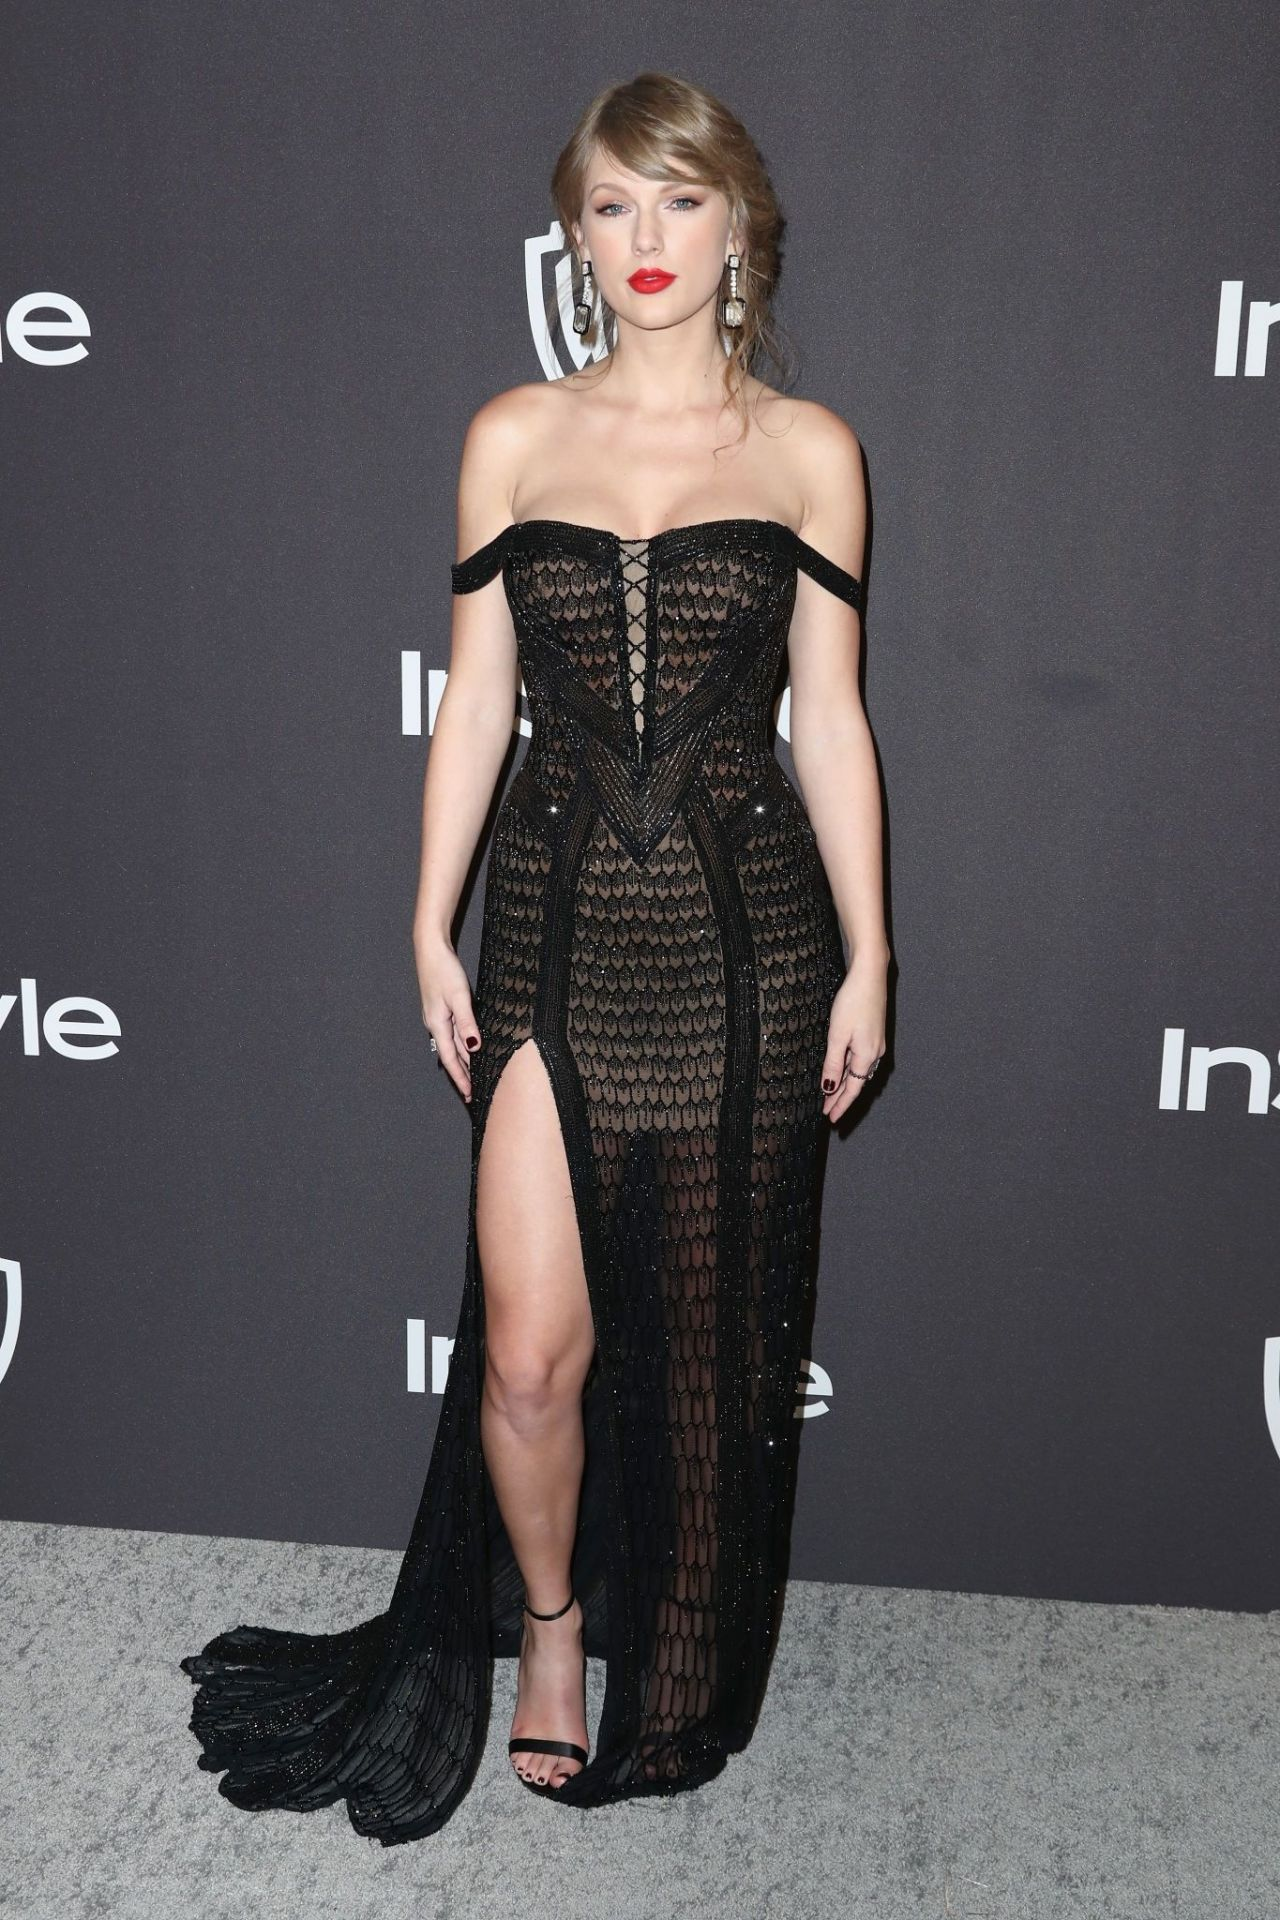 taylor-swift-InStyle-e-Warner-bros-golden-globi-2019-after-party-15